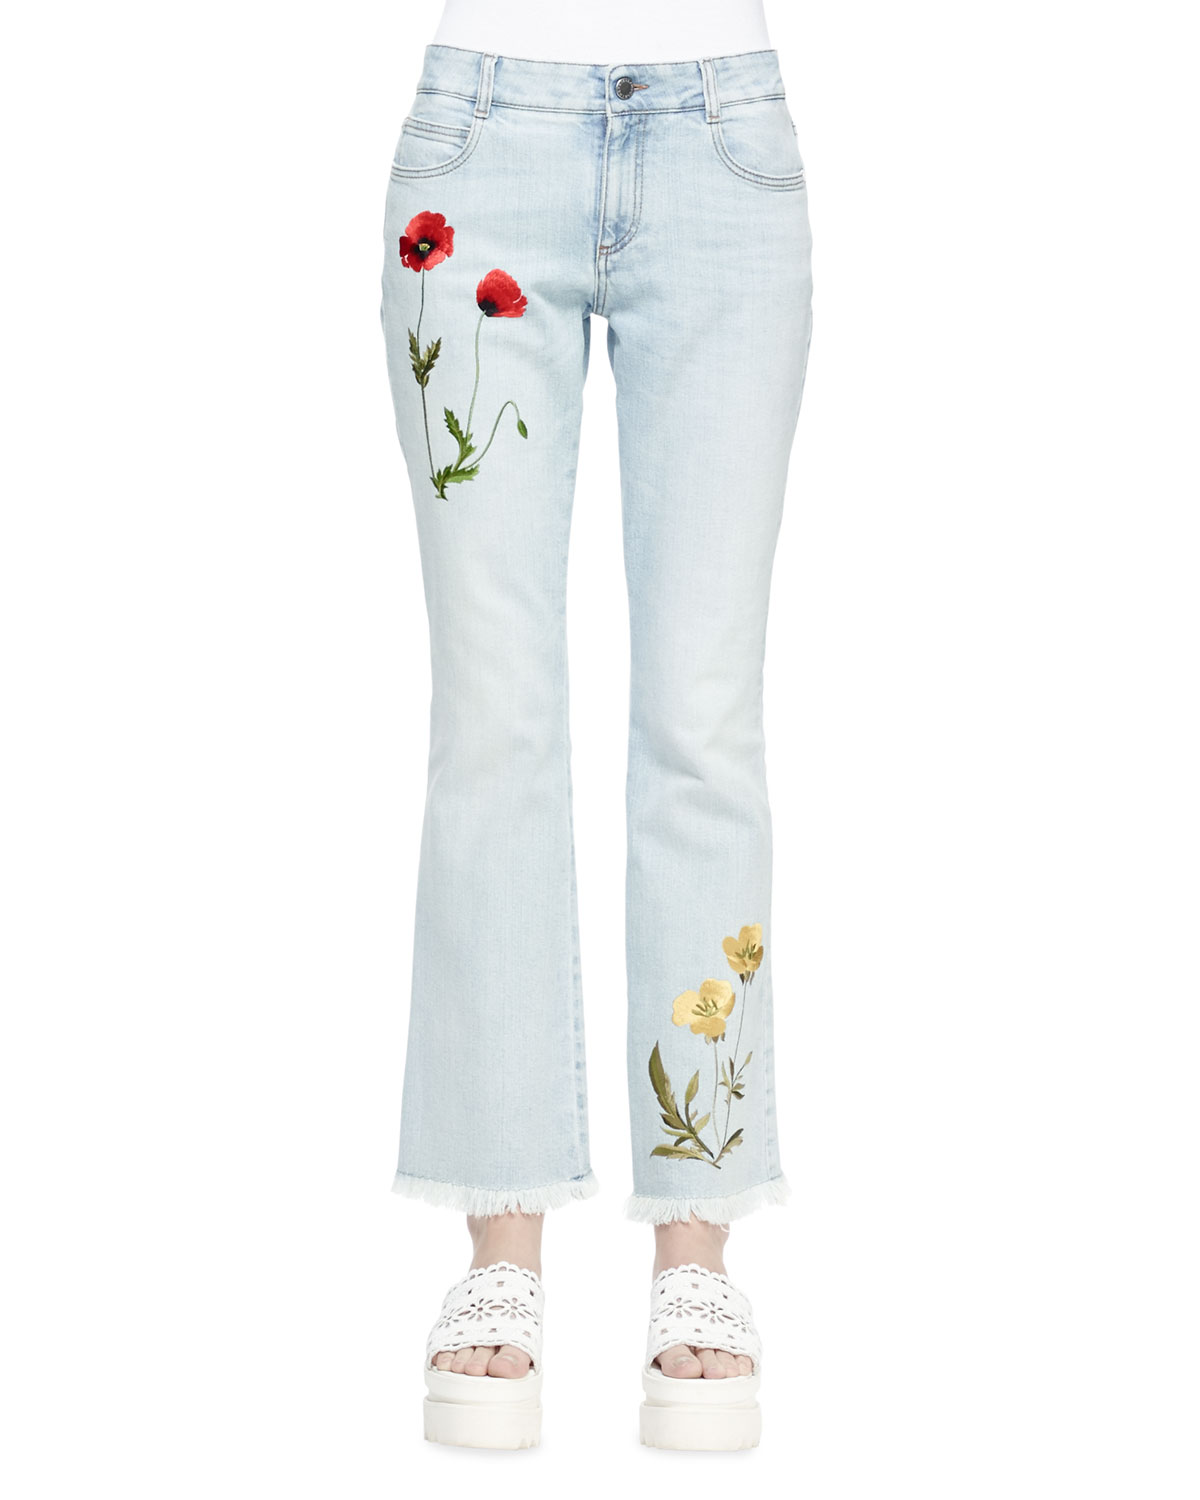 Stella McCartney Floral-Embroidered Flare Jeans, Sun Fade Blue, Size: 27, Pale Blue